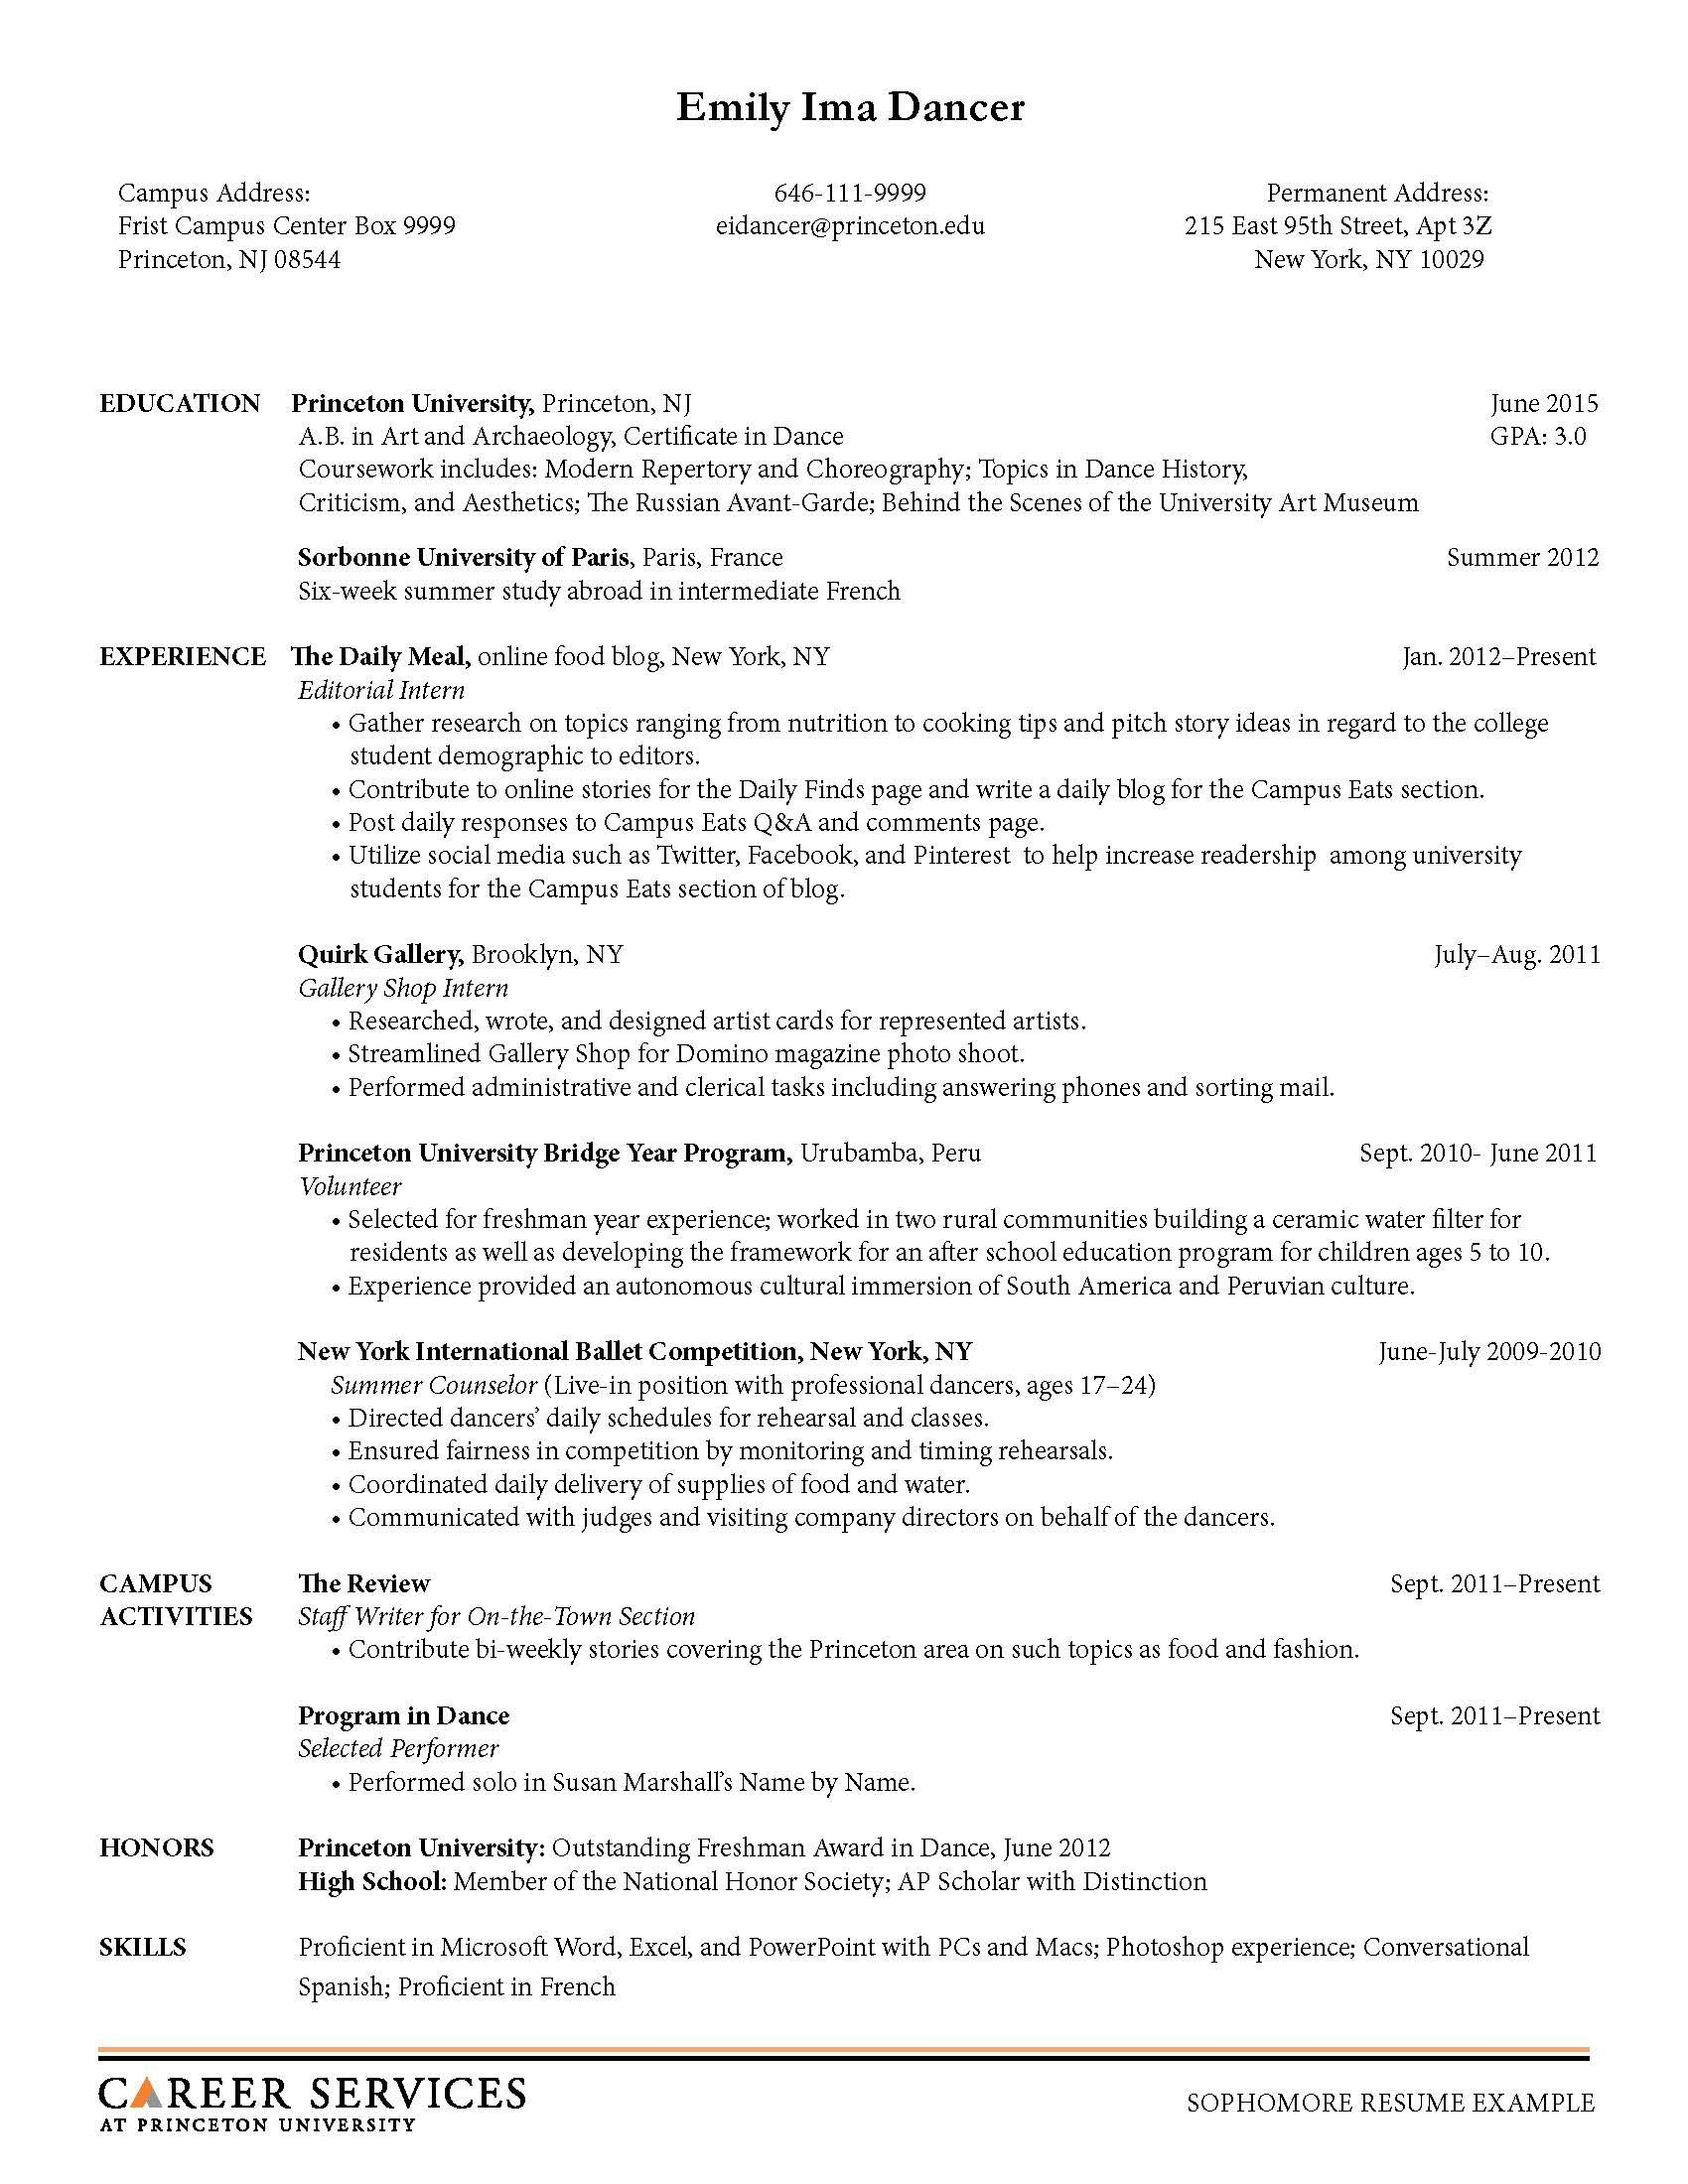 Opposenewapstandardsus  Seductive Sample Resume Resume And Career On Pinterest With Licious Guaranteed Resumes Besides Business School Resume Furthermore Objective For Internship Resume With Alluring Ultrasound Resume Also Resume Writting In Addition Medical Resume Template And Electronic Technician Resume As Well As Resume Curriculum Vitae Additionally Common Resume Mistakes From Pinterestcom With Opposenewapstandardsus  Licious Sample Resume Resume And Career On Pinterest With Alluring Guaranteed Resumes Besides Business School Resume Furthermore Objective For Internship Resume And Seductive Ultrasound Resume Also Resume Writting In Addition Medical Resume Template From Pinterestcom